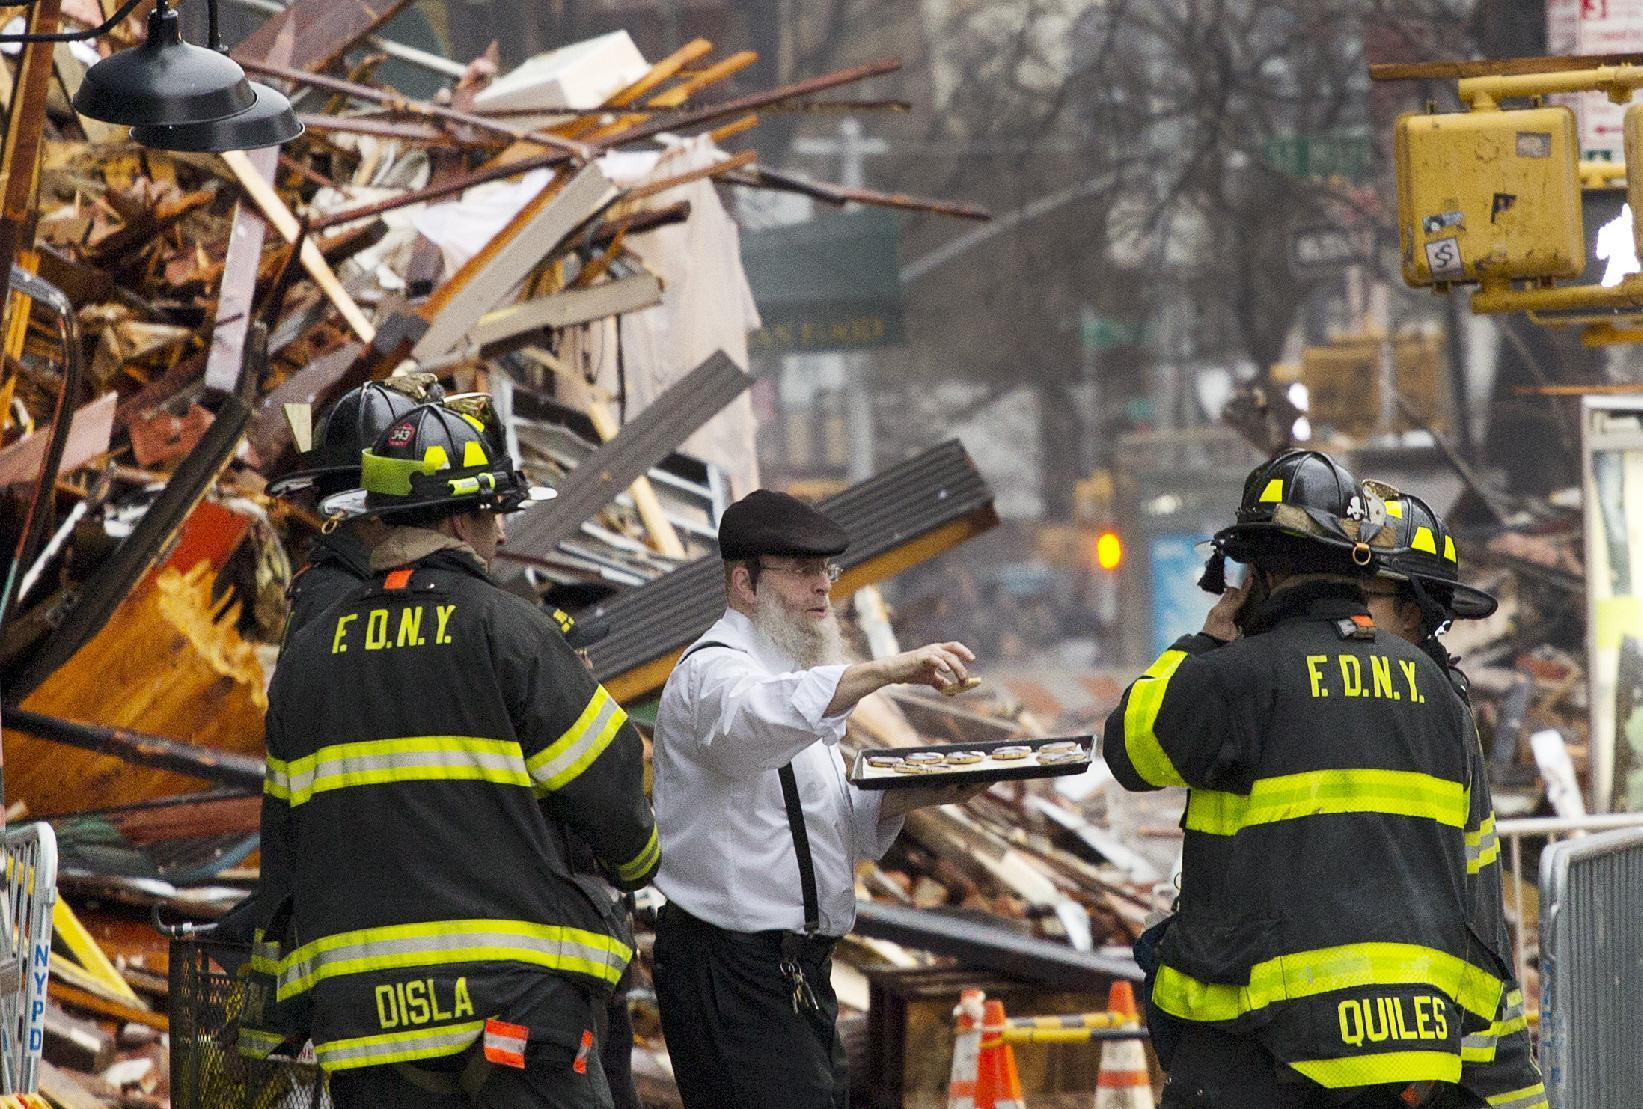 2 people unaccounted for after apparent NYC gas explosion